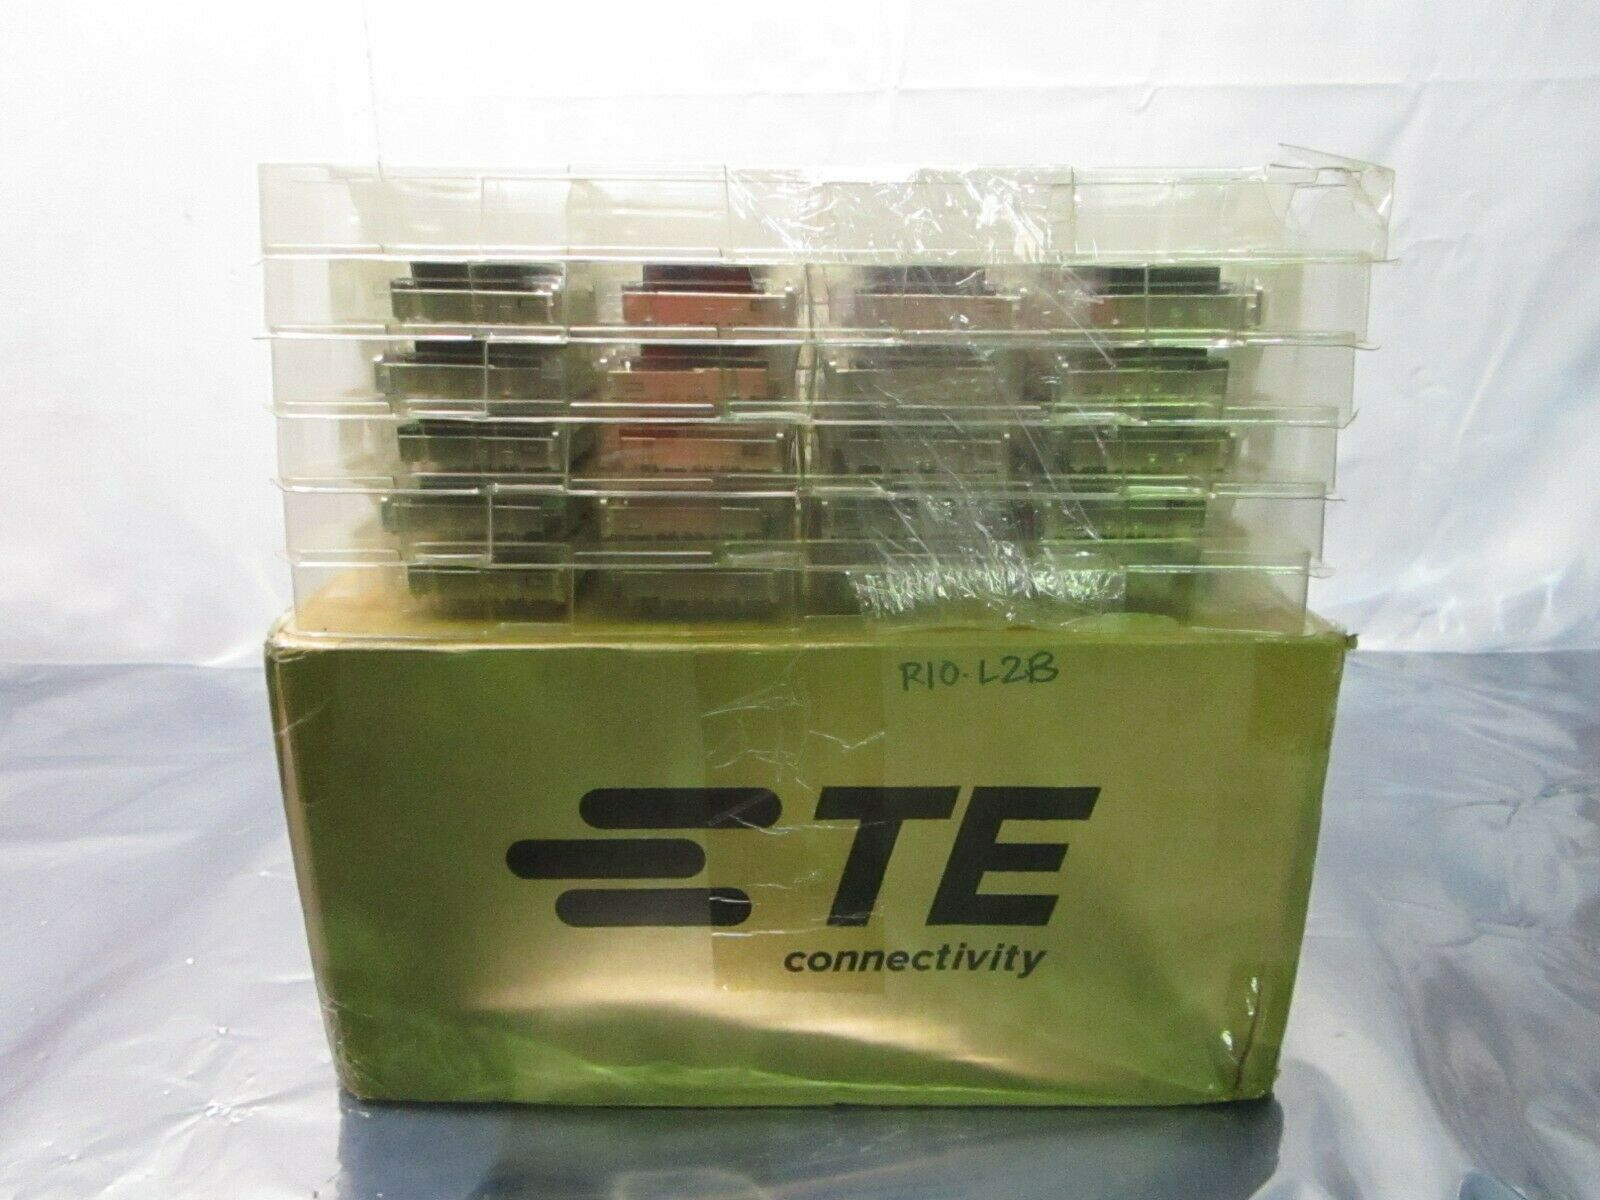 1 Lot of 40 TE connectivity AMP Brand 2170551-1 1X6 CAGE ASSEMBLY, 102526